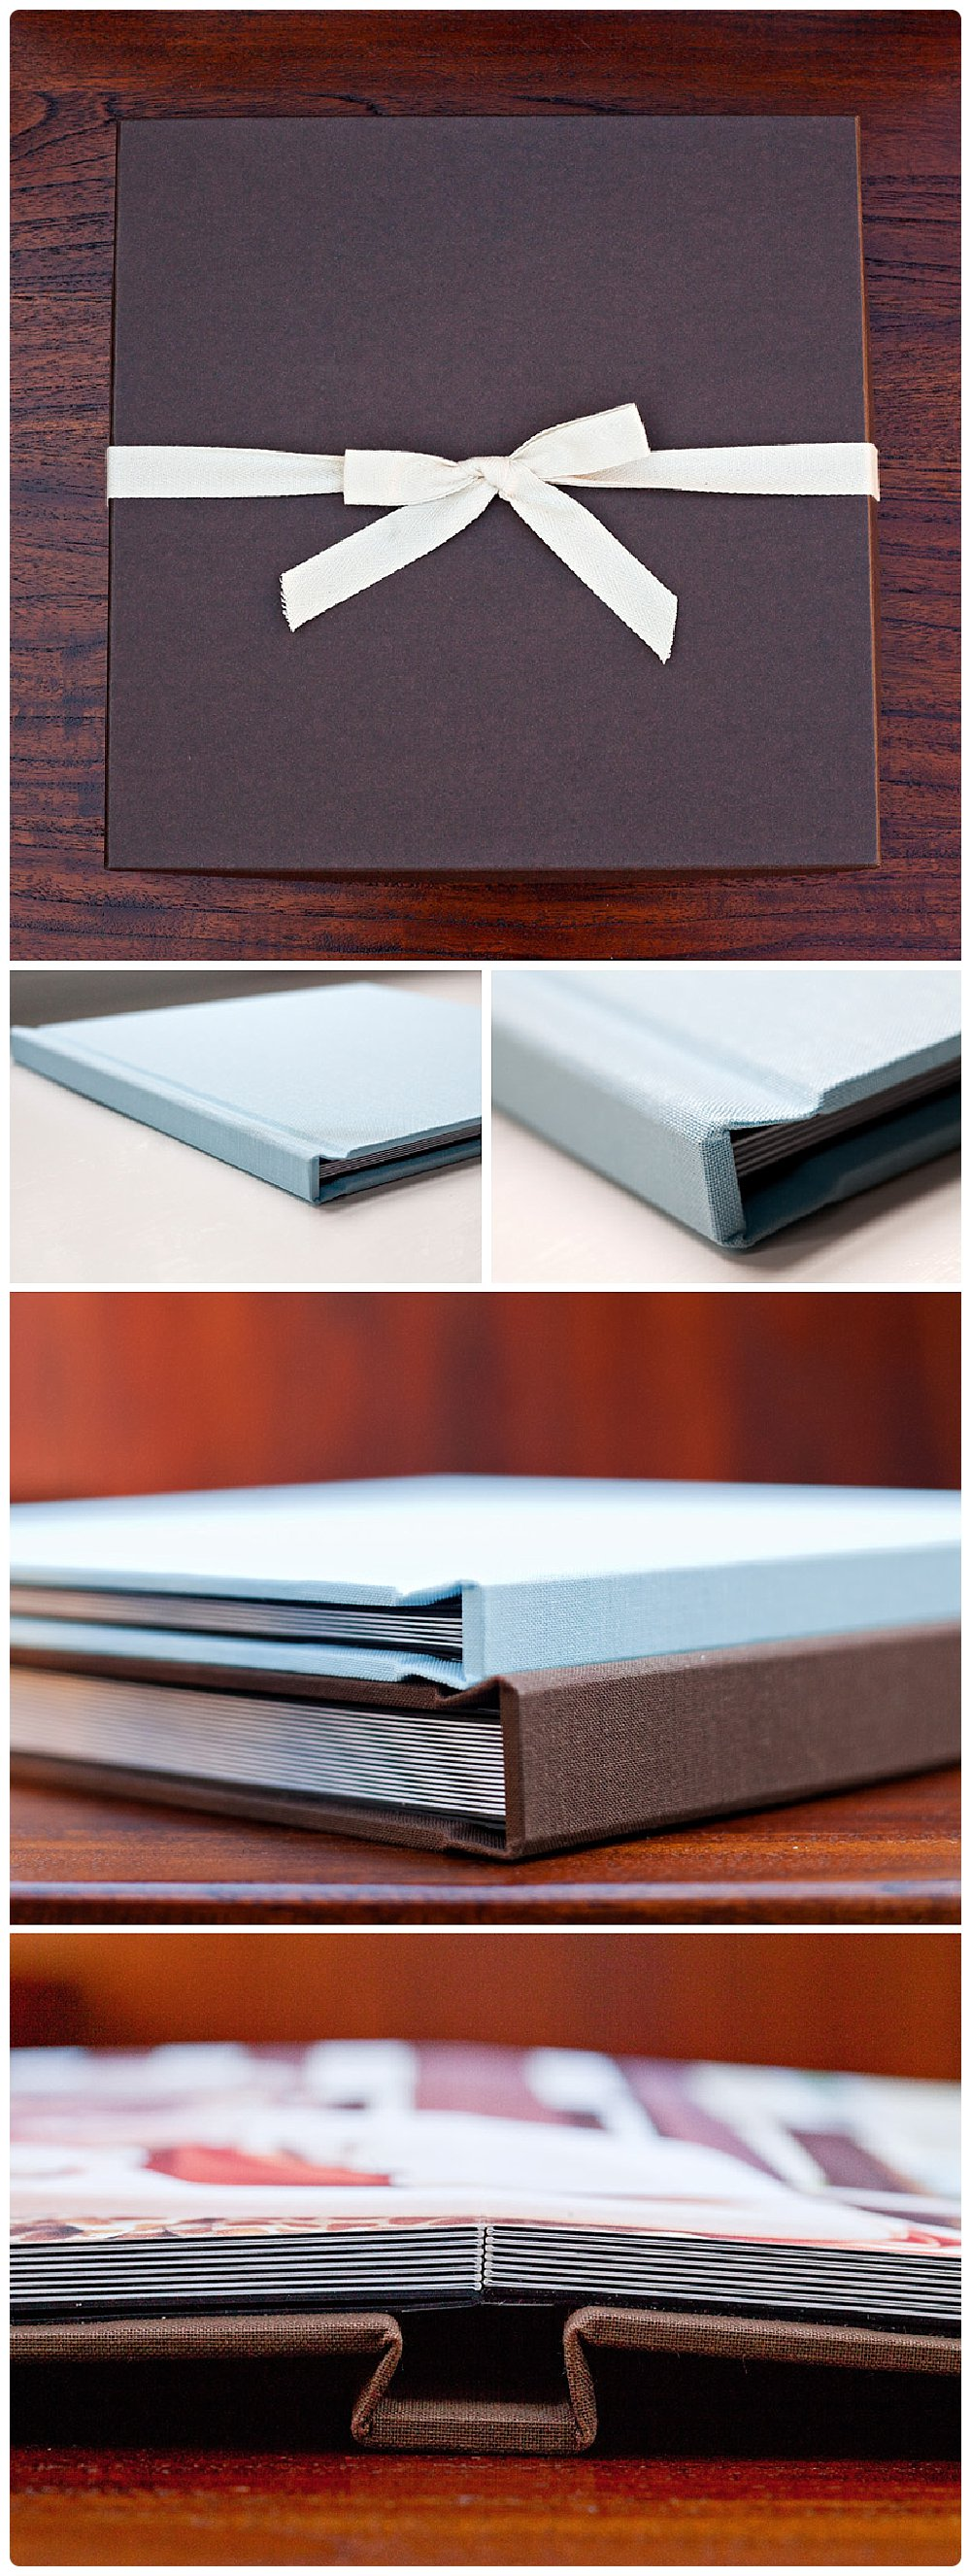 Coffee Table albums make a great gift for grandparents, too!